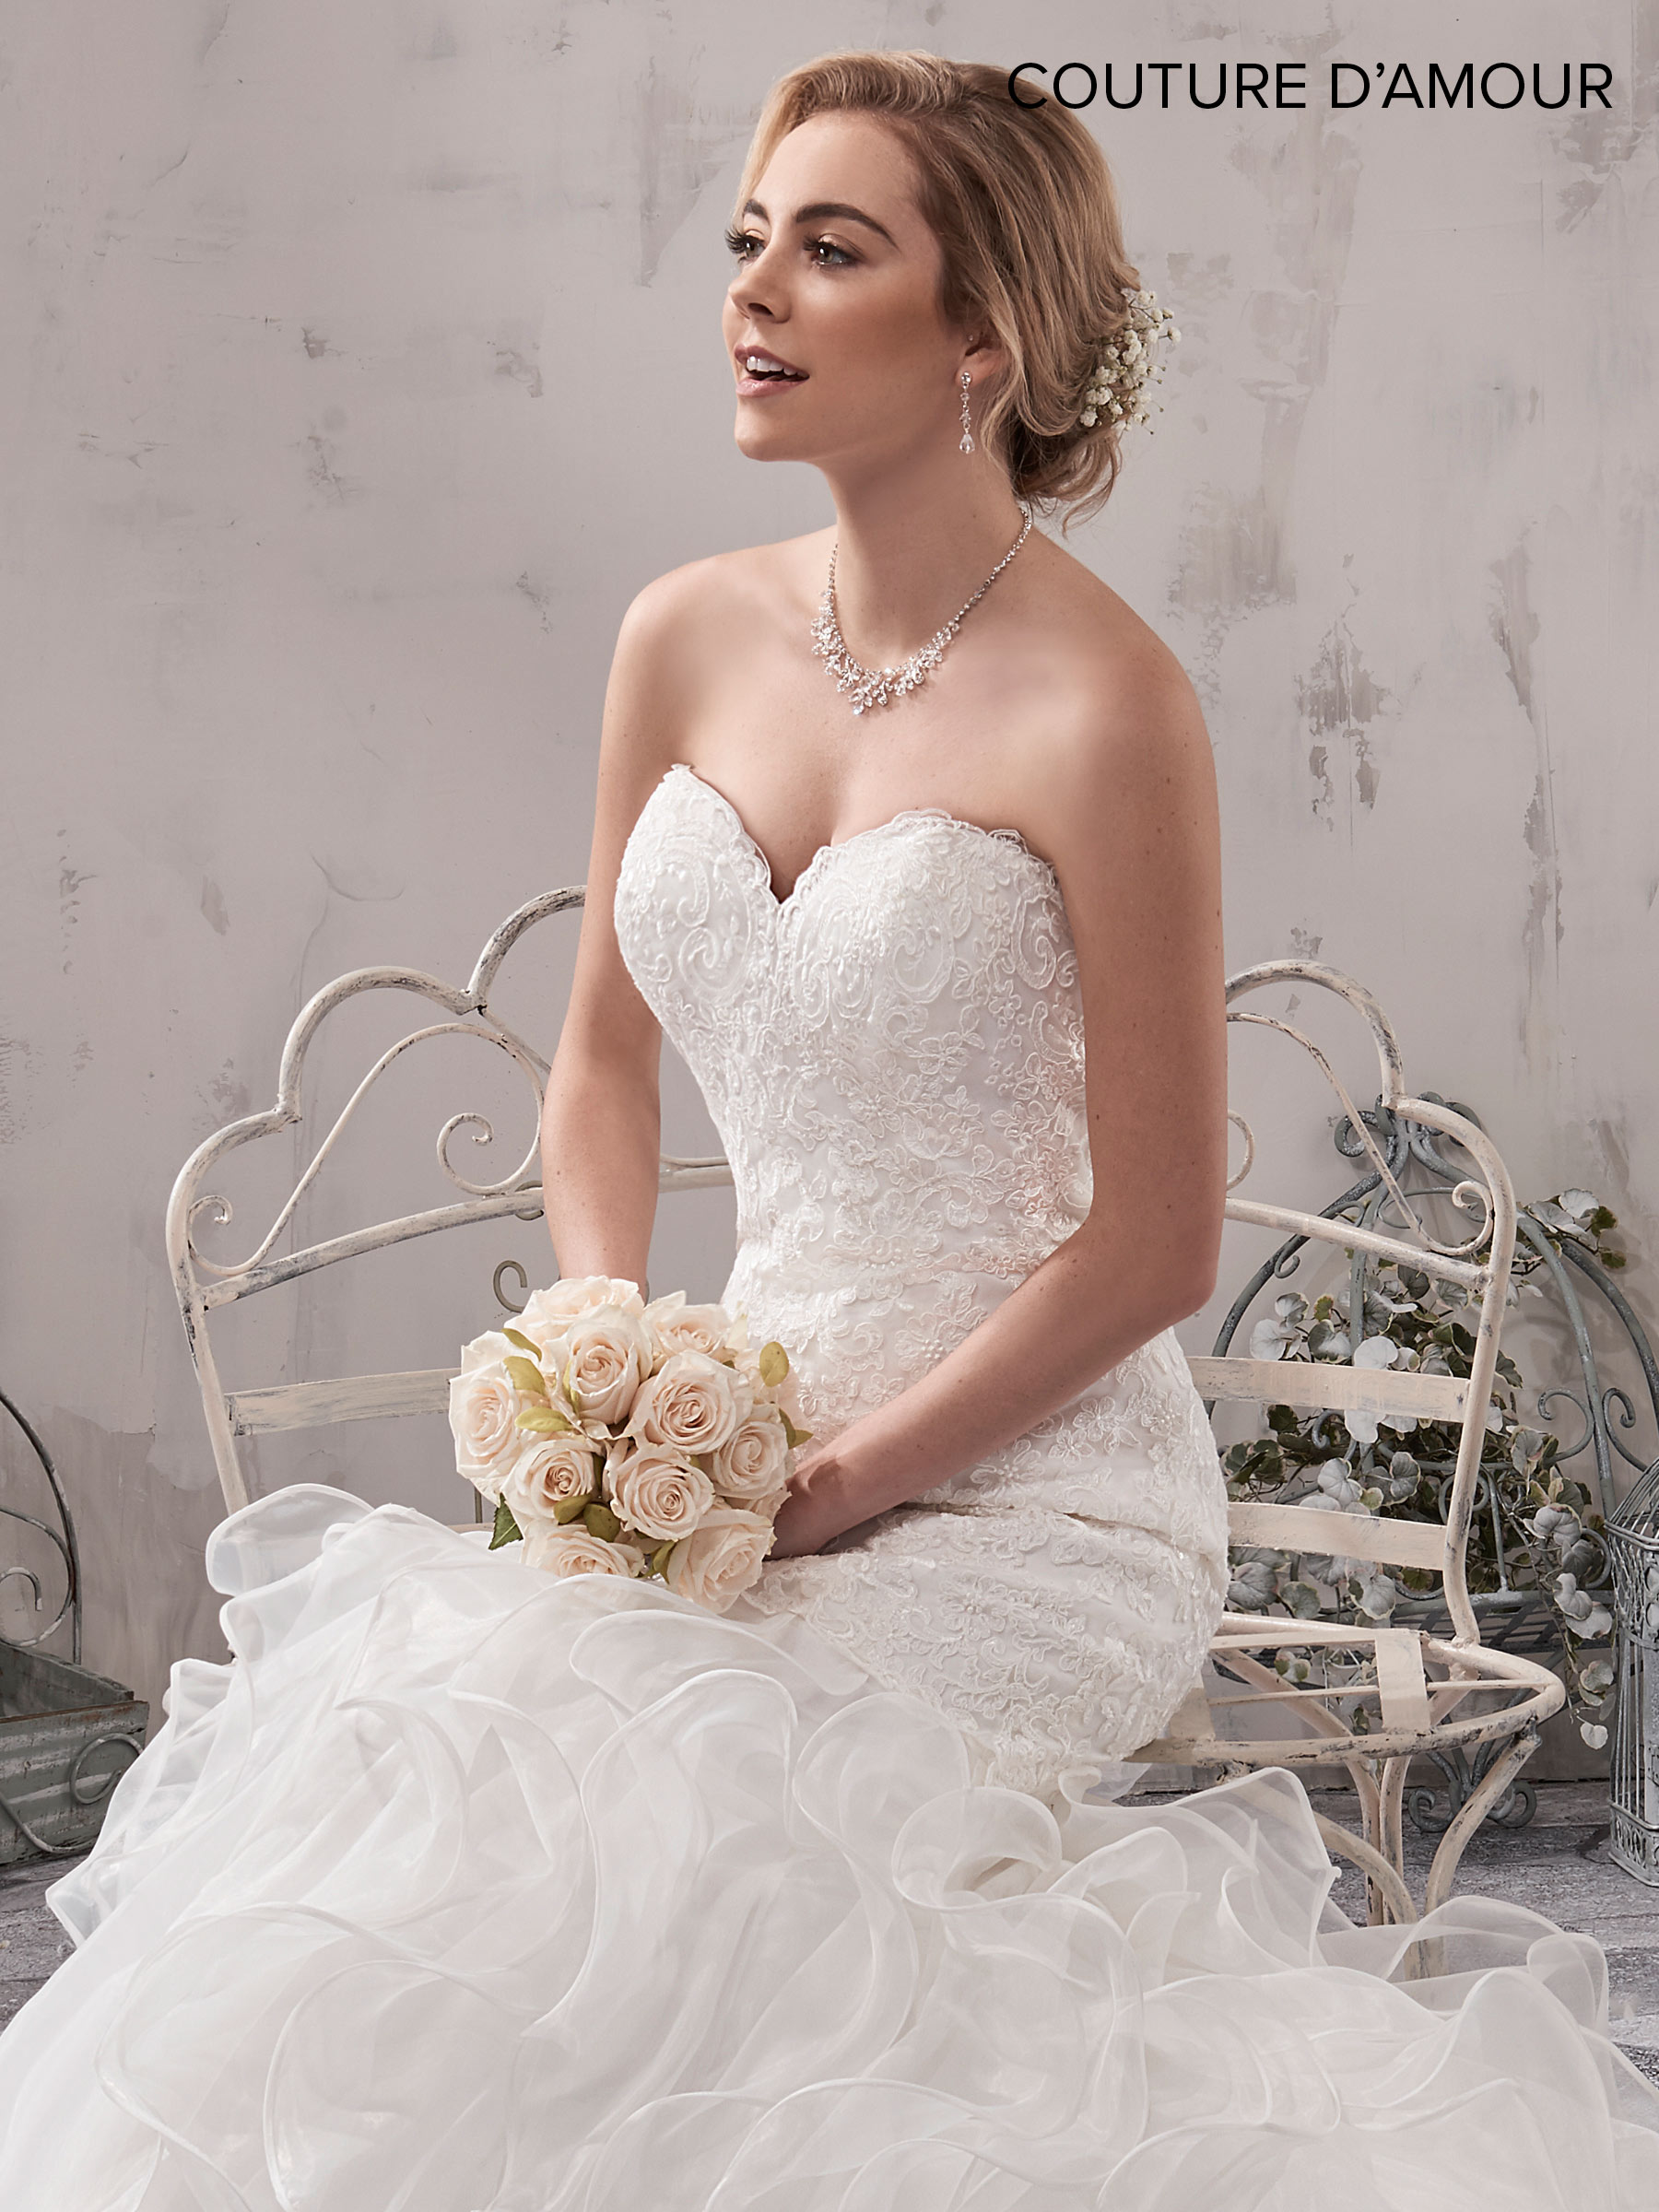 Couture Damour Bridal Dresses | Couture d'Amour | Style - MB4015